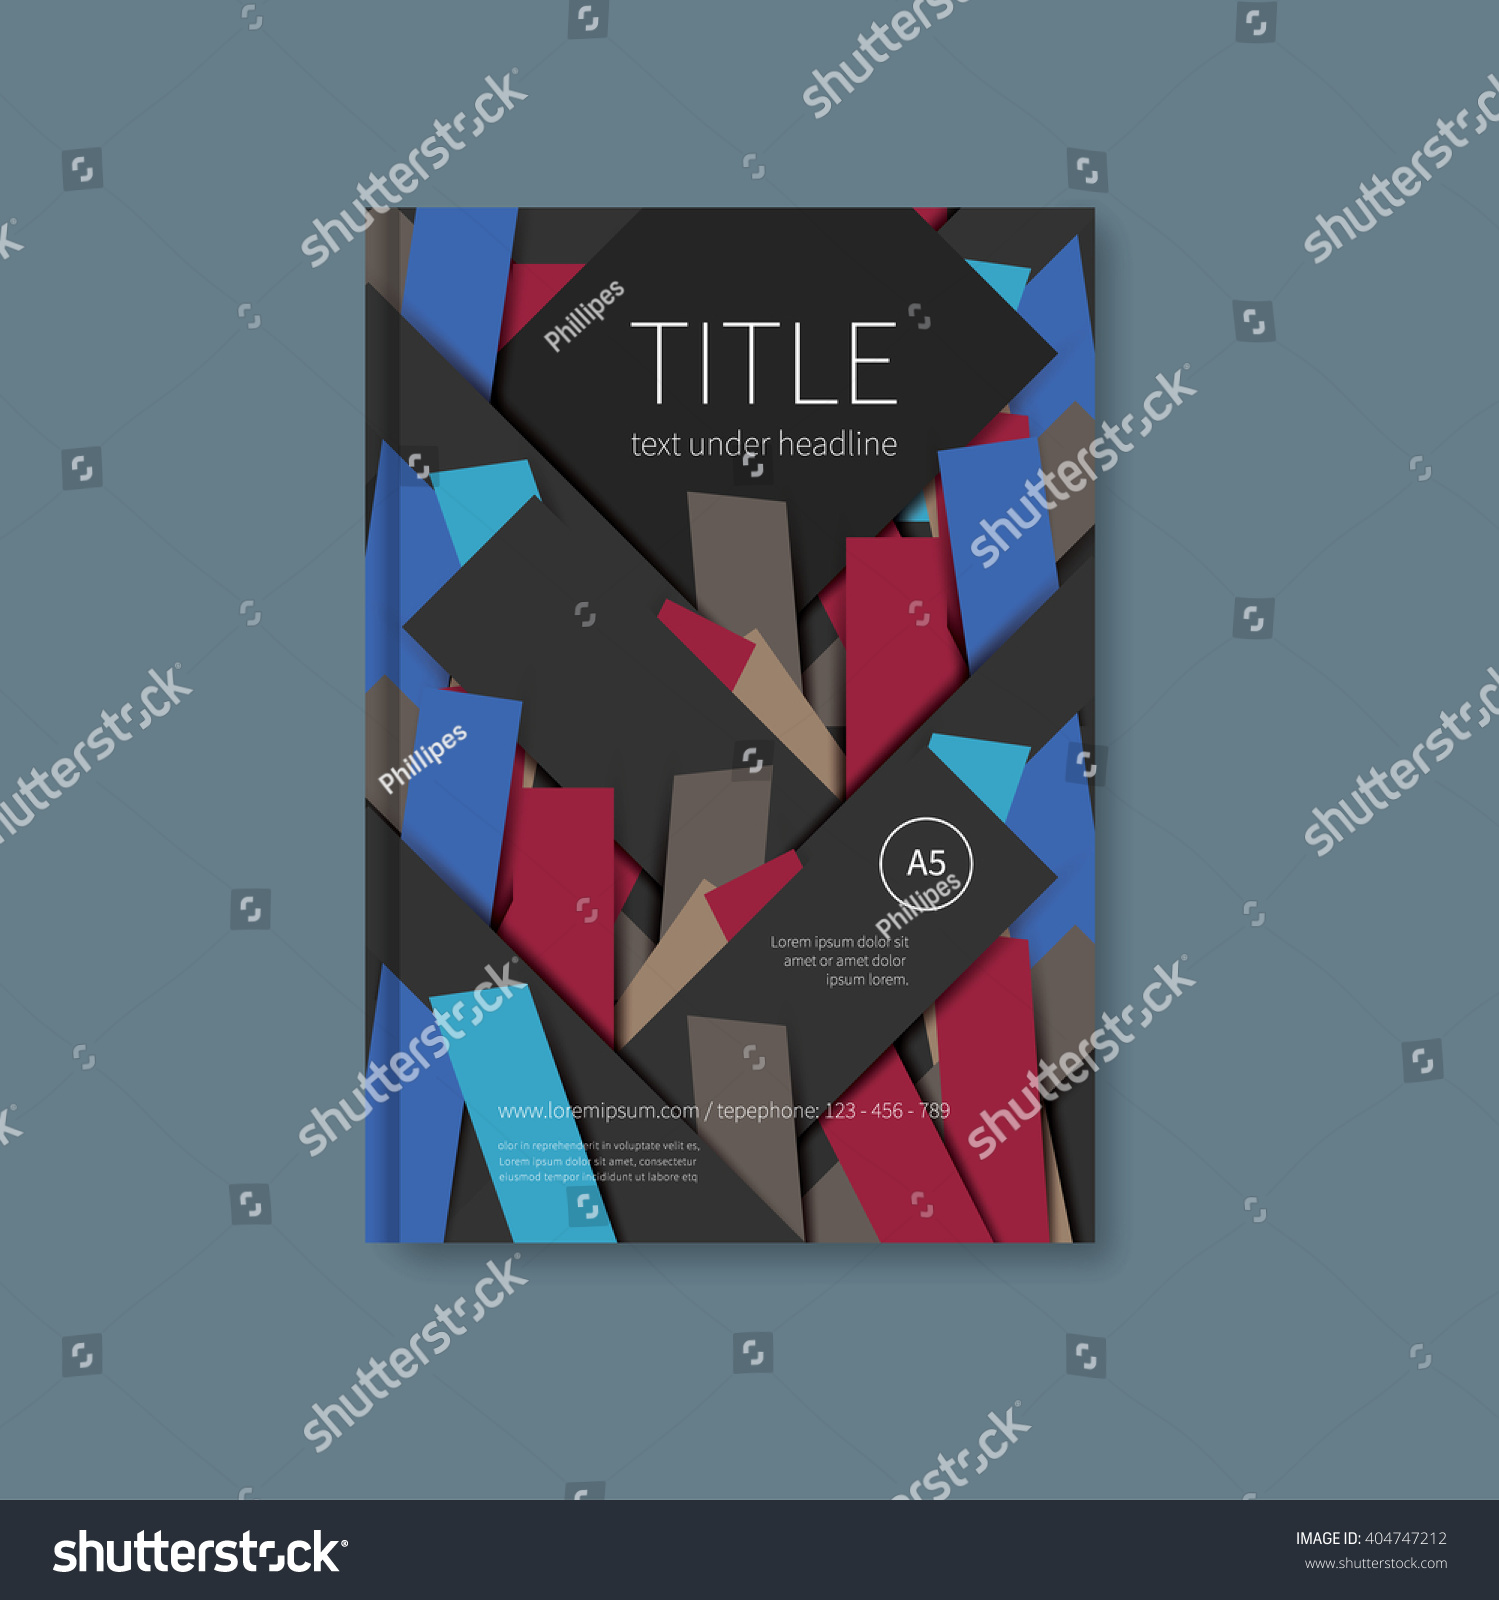 Cover page designs for school projects note book cover page design - Brochure Or Notebook First Page With Overlayed Cut Stickers Papers Book Design Cover Template